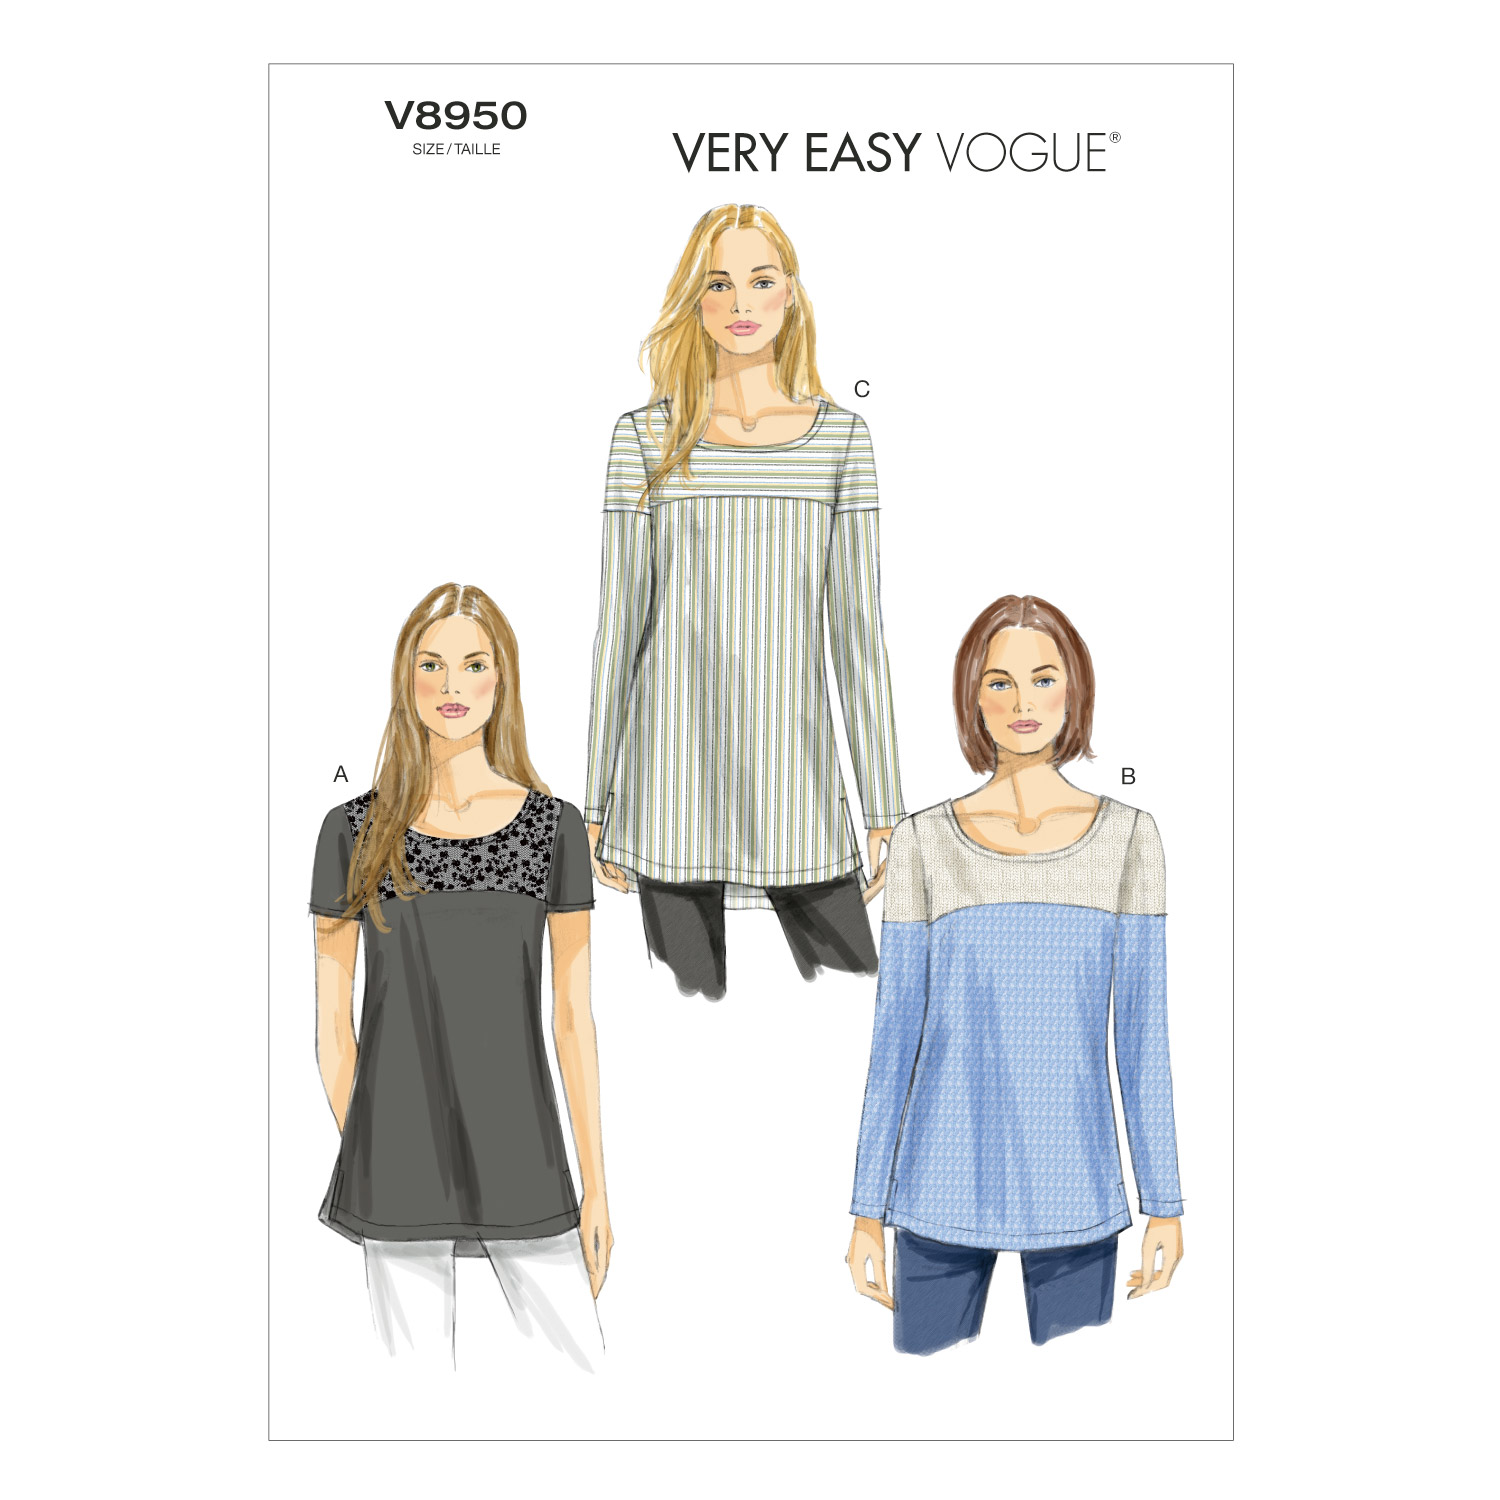 Vogue Patterns Misses Top-V8950